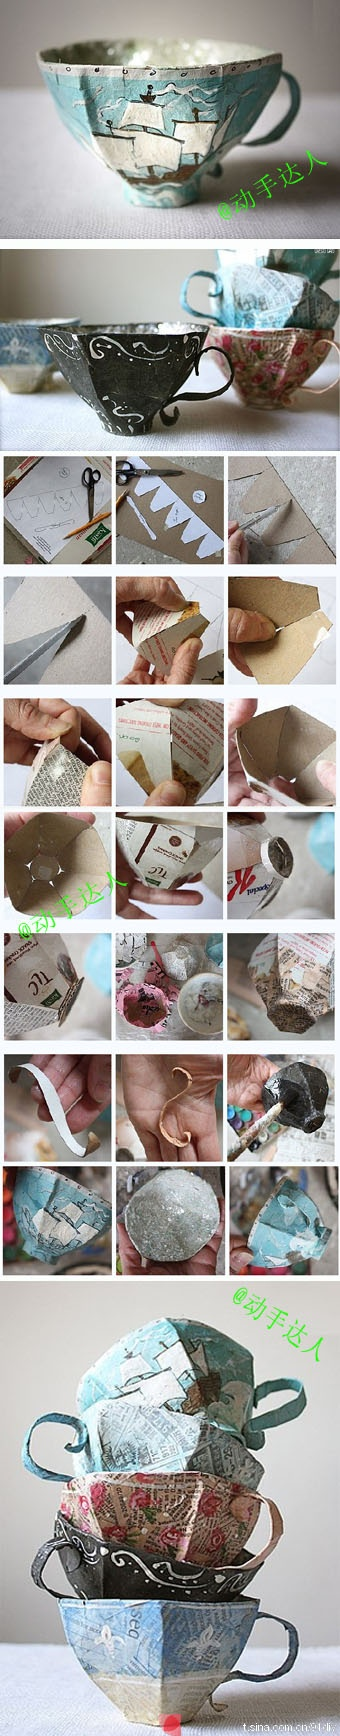 how to make a paper mach tea cup